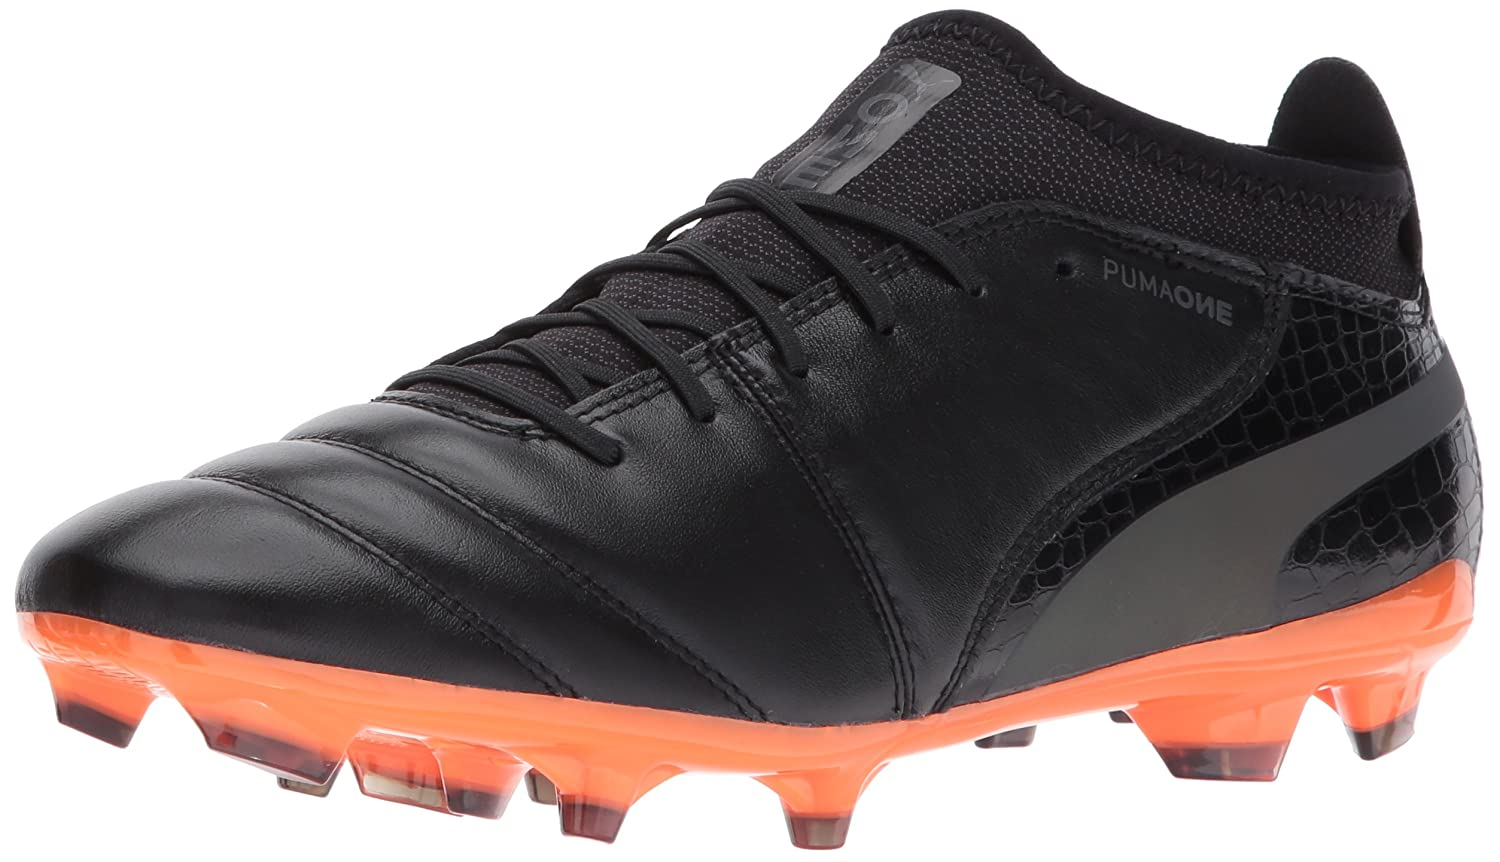 PUMA Men's One Lux 2 FG Soccer Schuhe, schwarz schwarz-Shocking Orange, 10 M US